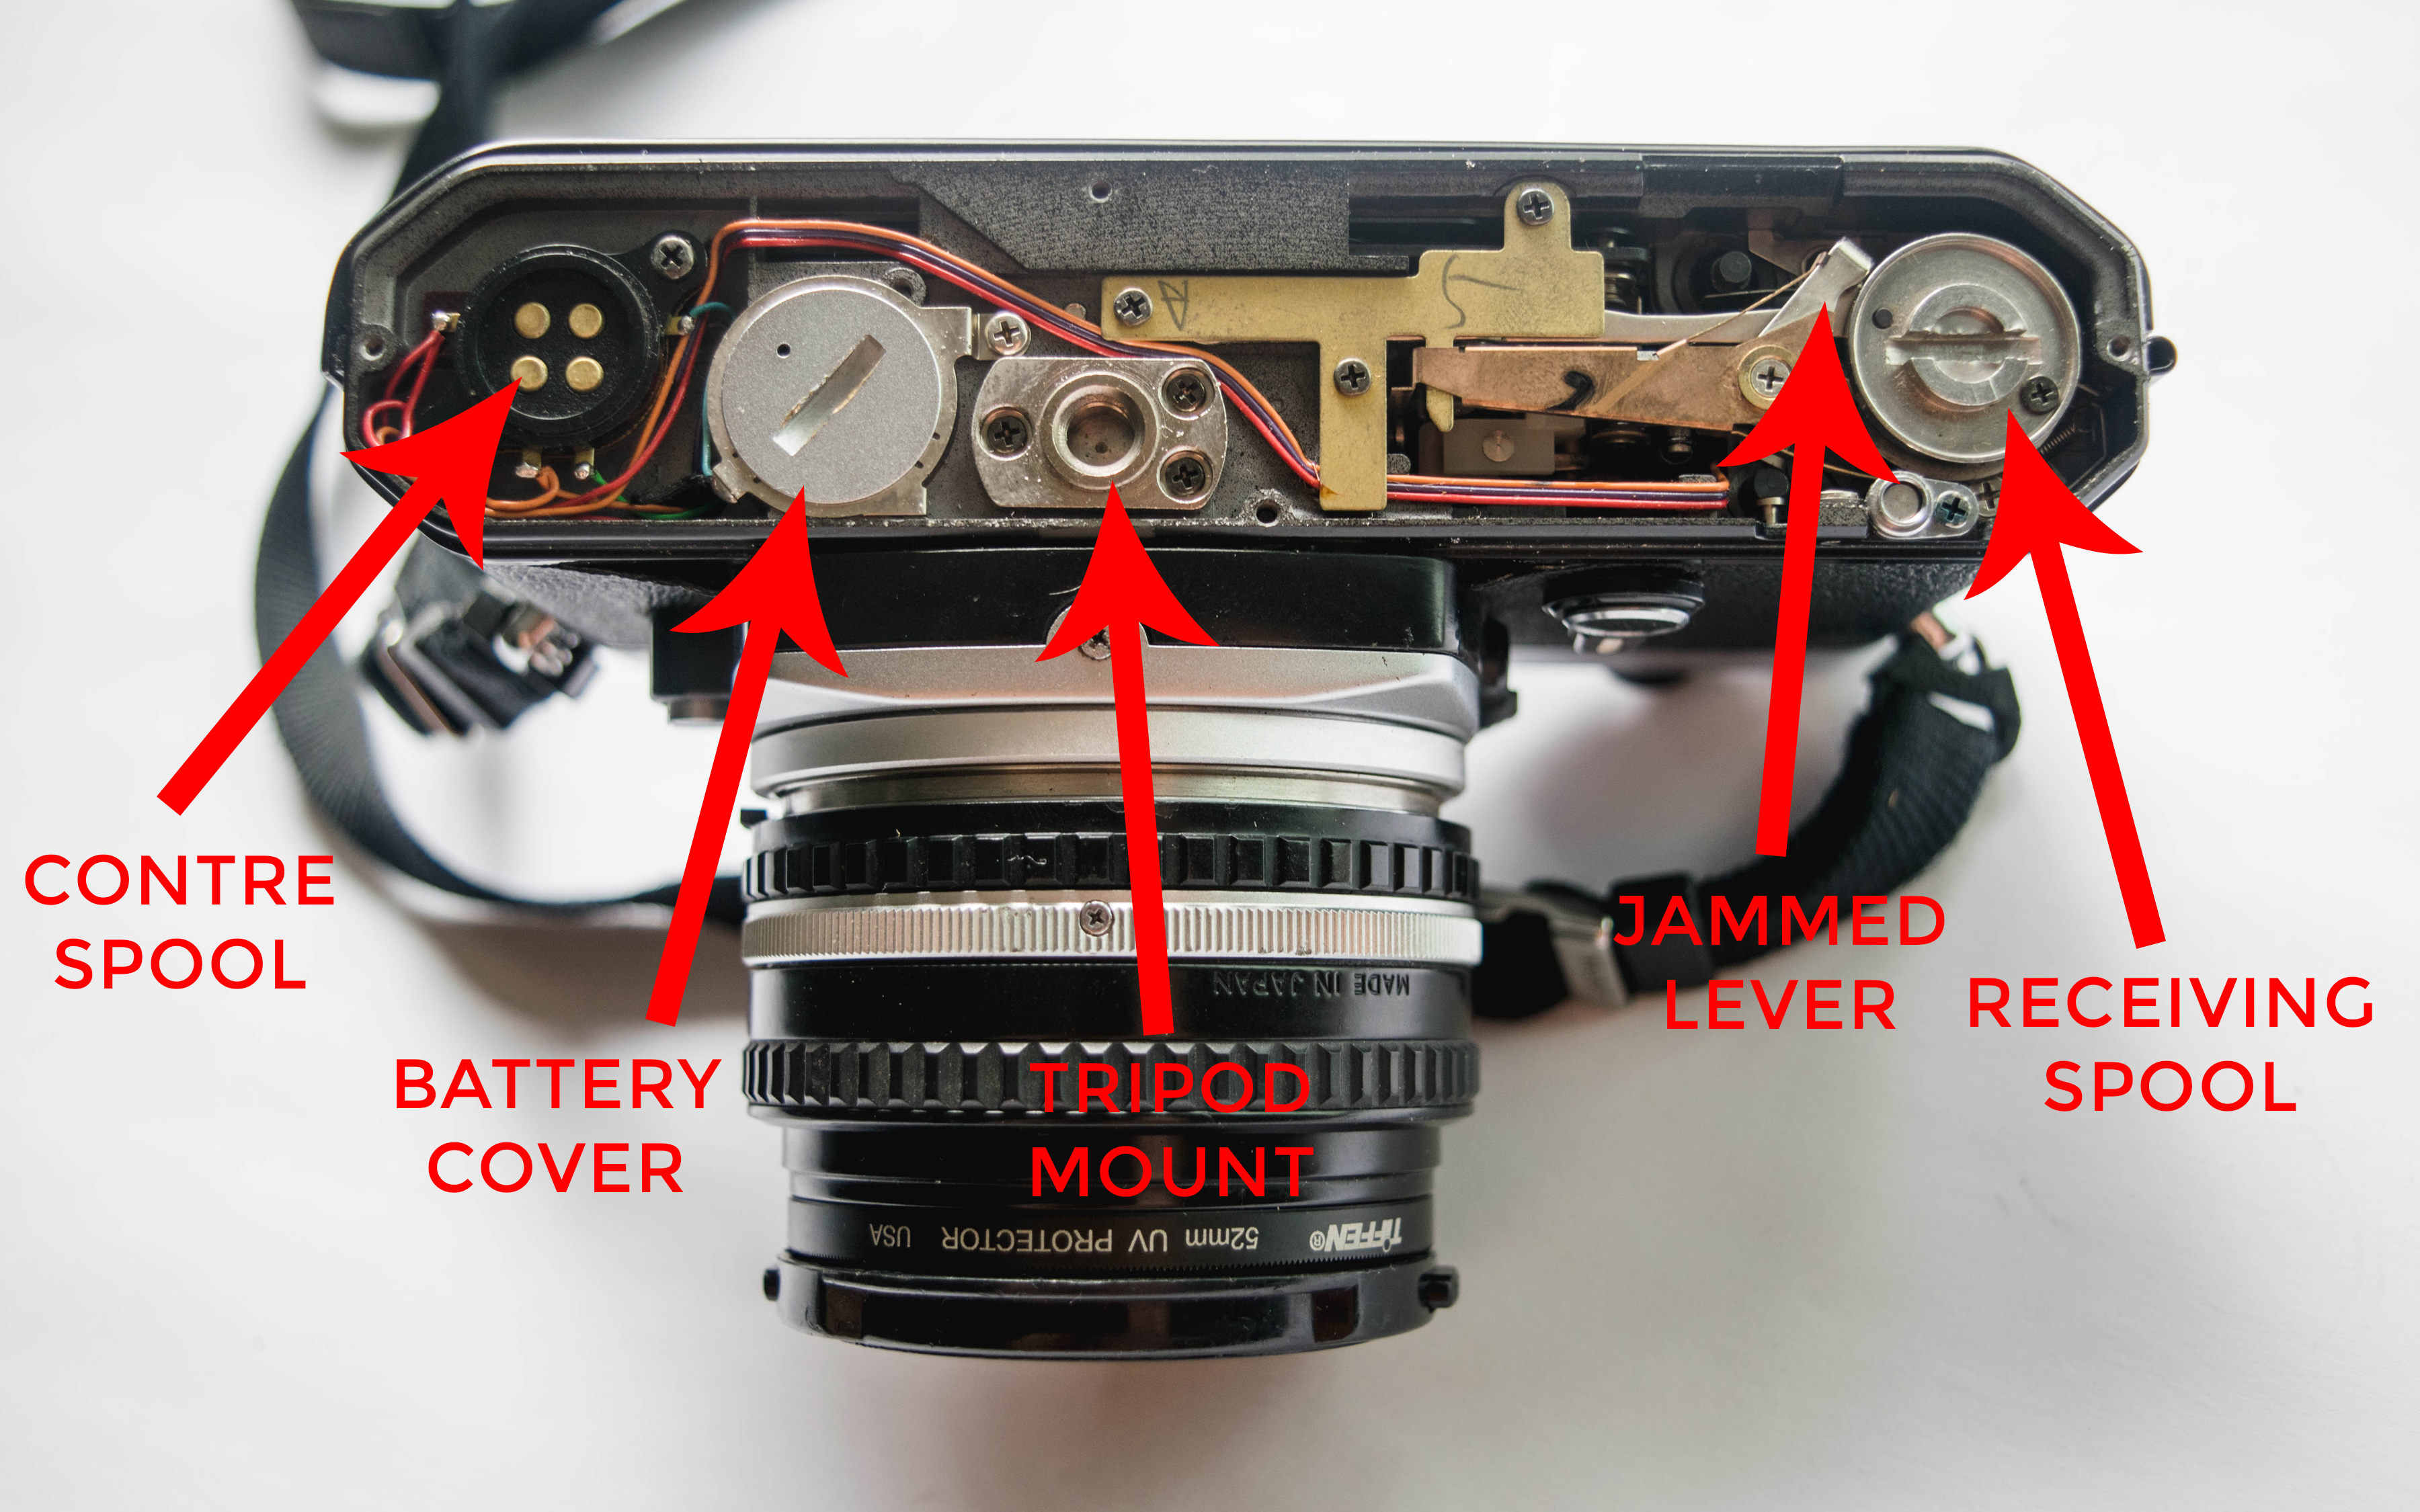 Inside Parts - How to Fix a Nikon FE Film Camera with a Jammed Shutter - FilterGrade Blog